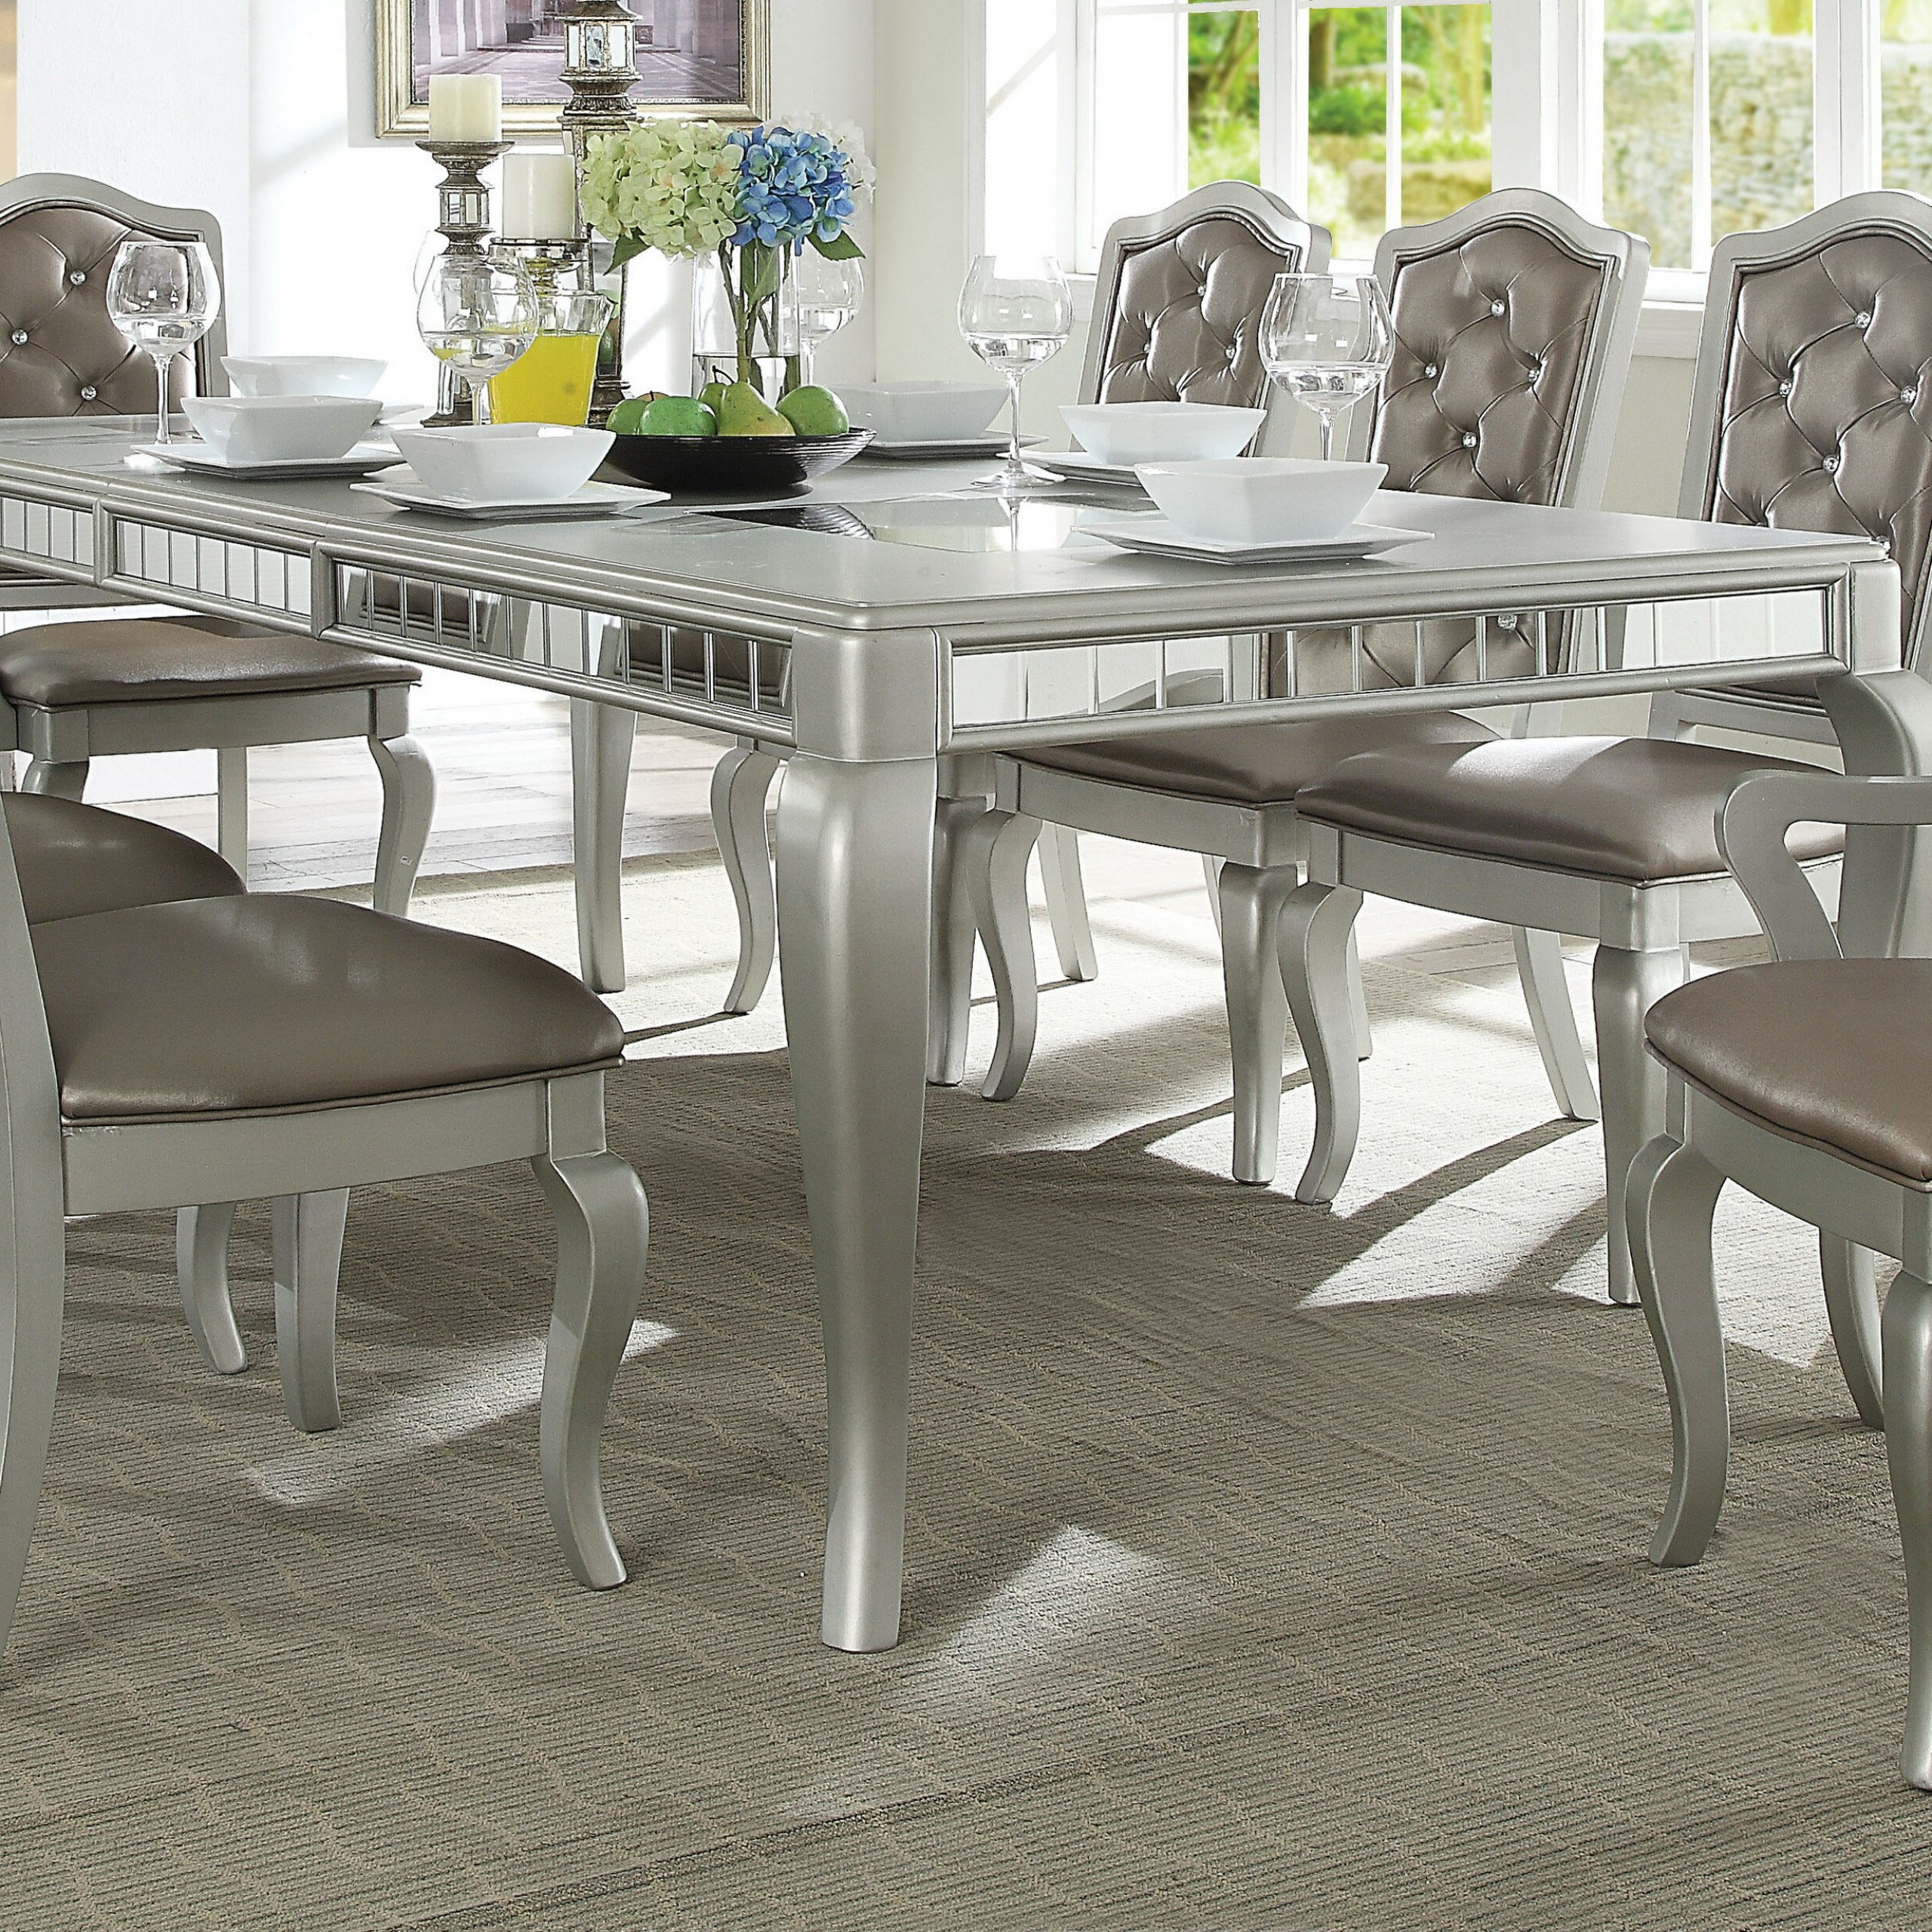 Dawson 9 Piece Extendable Dining Set Inside Most Current Dawson Pedestal Dining Tables (Image 6 of 25)